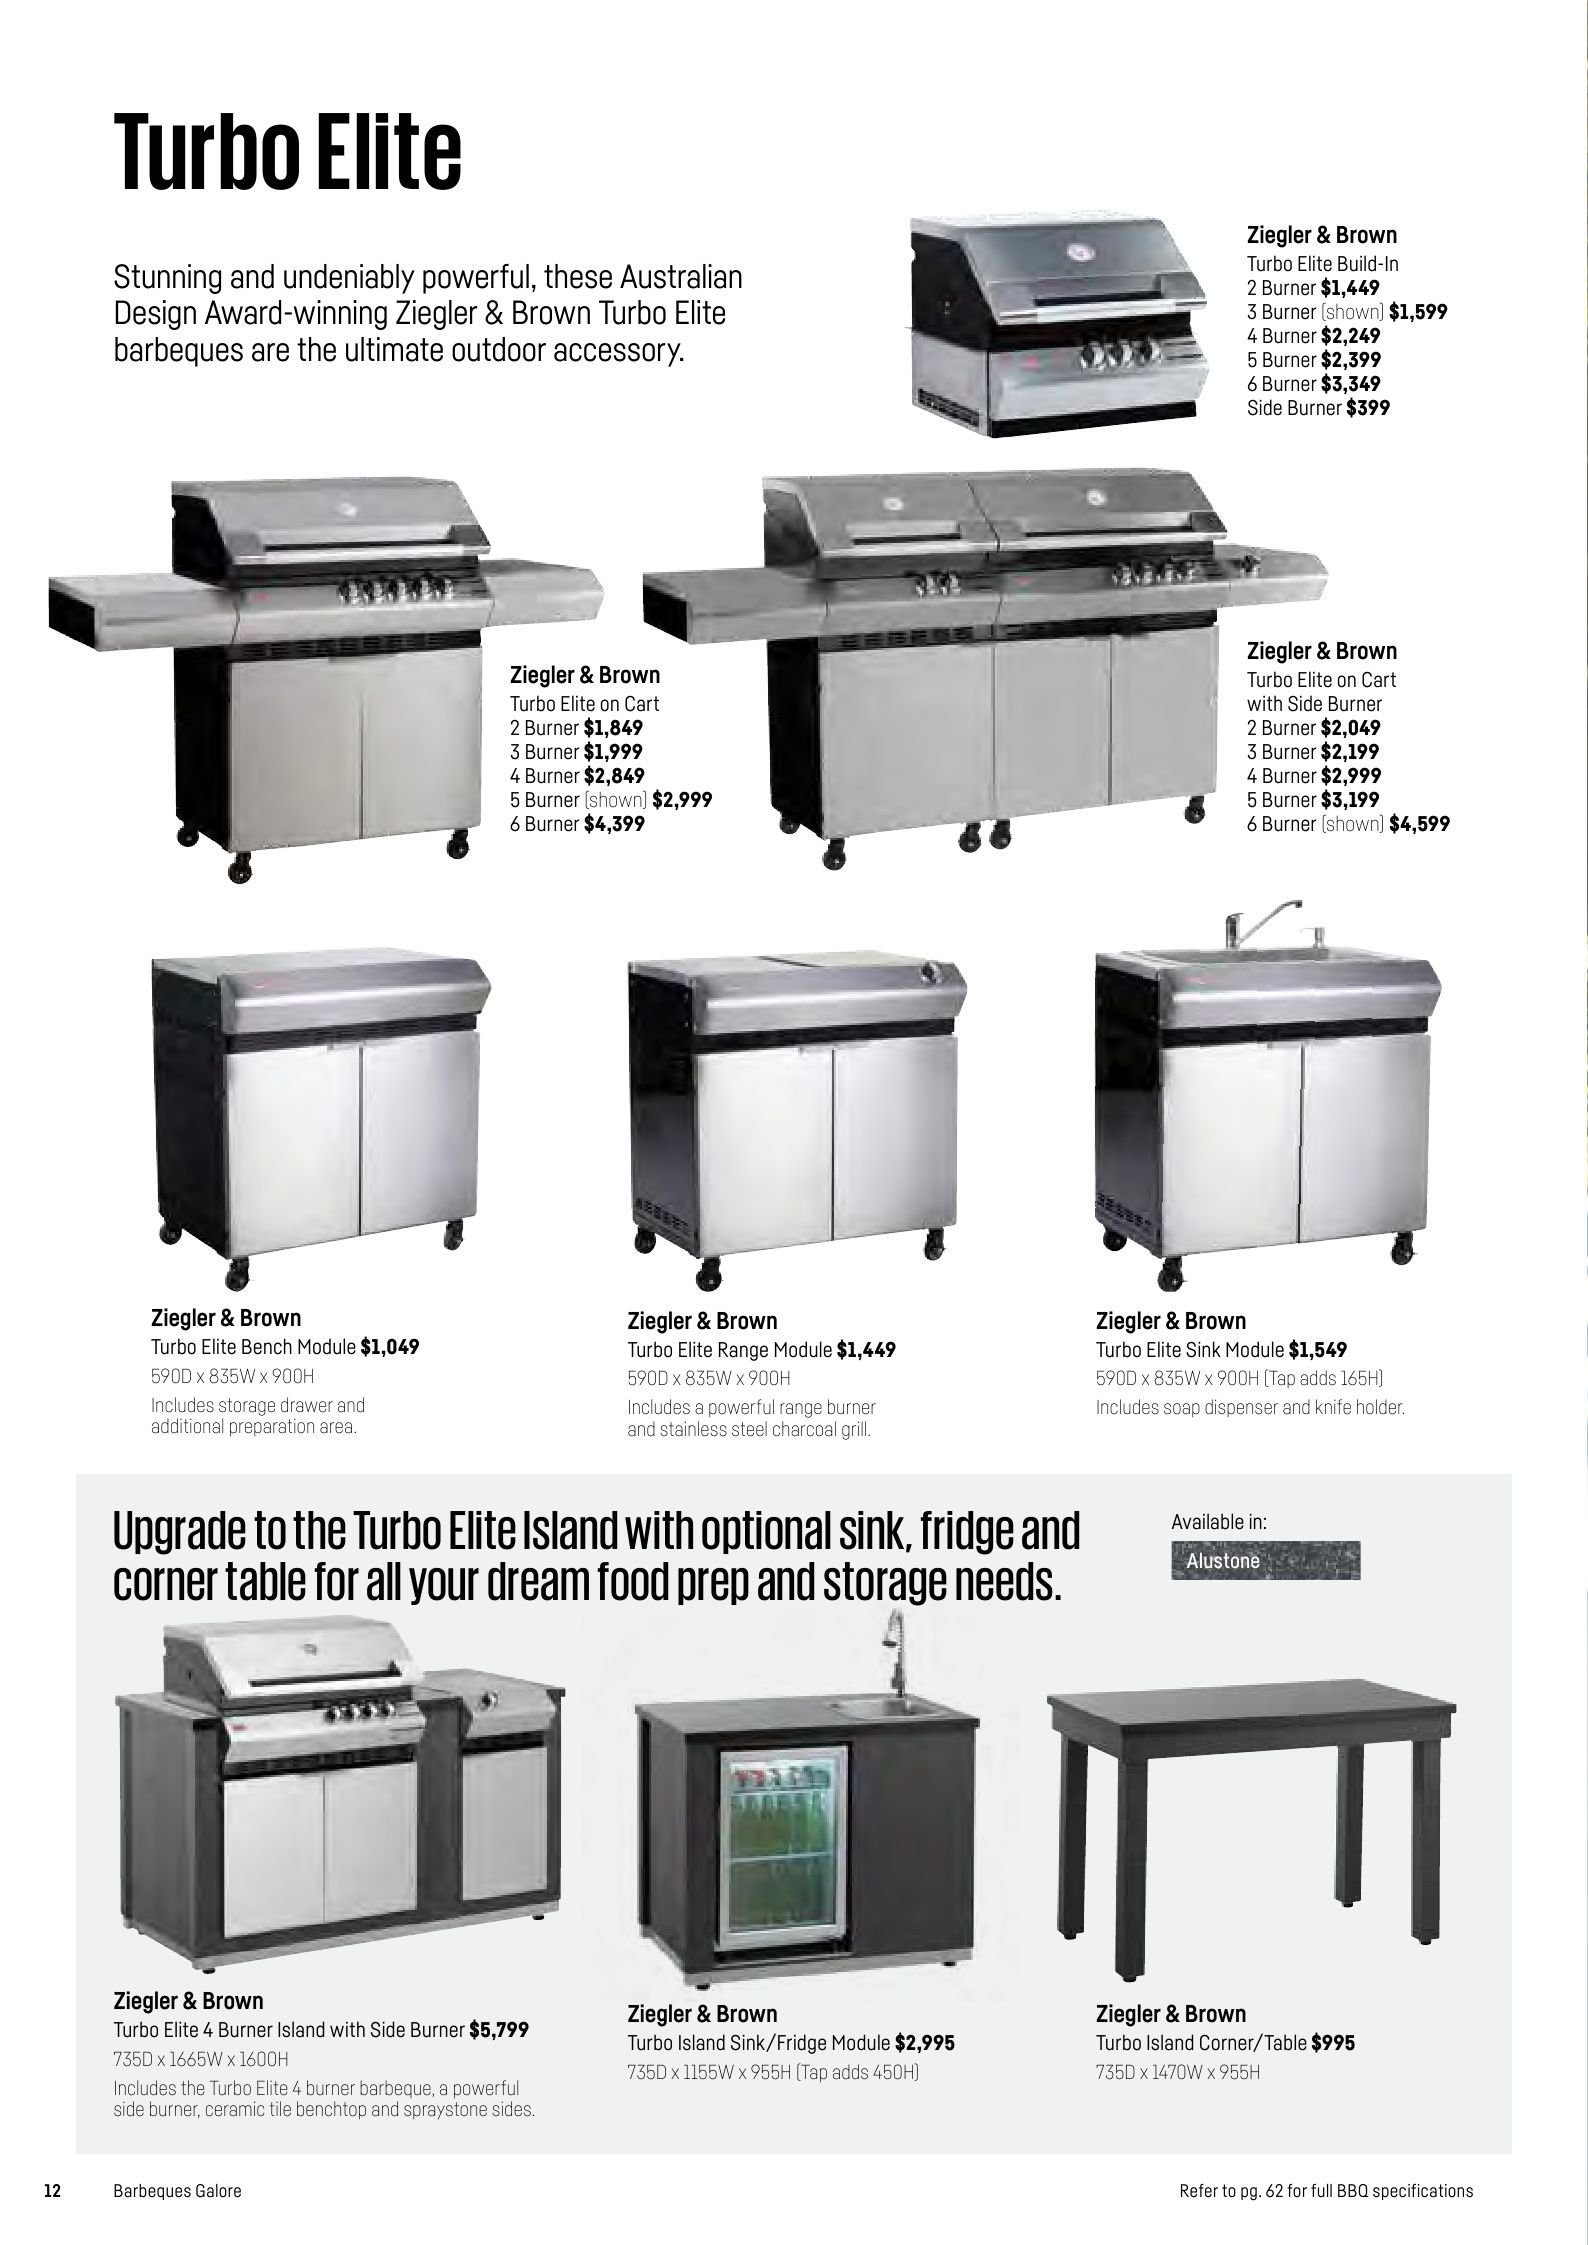 Barbeques galore catalogue sales products bench cart dispenser drawer grill